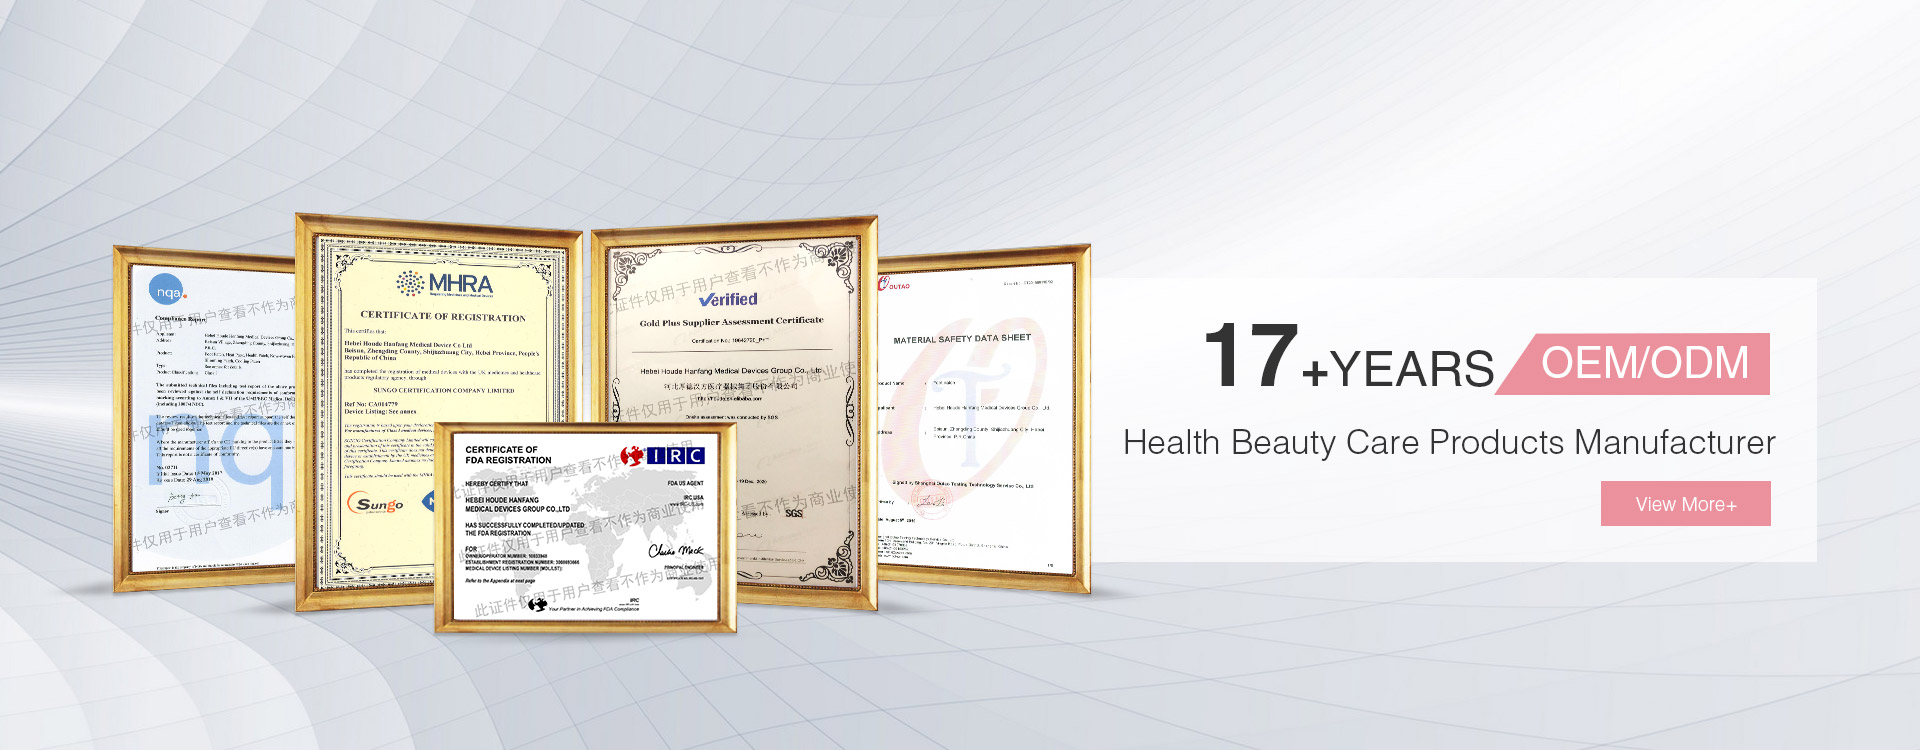 Hebei Houde Hanfang Medical Devices Group Co., Ltd.